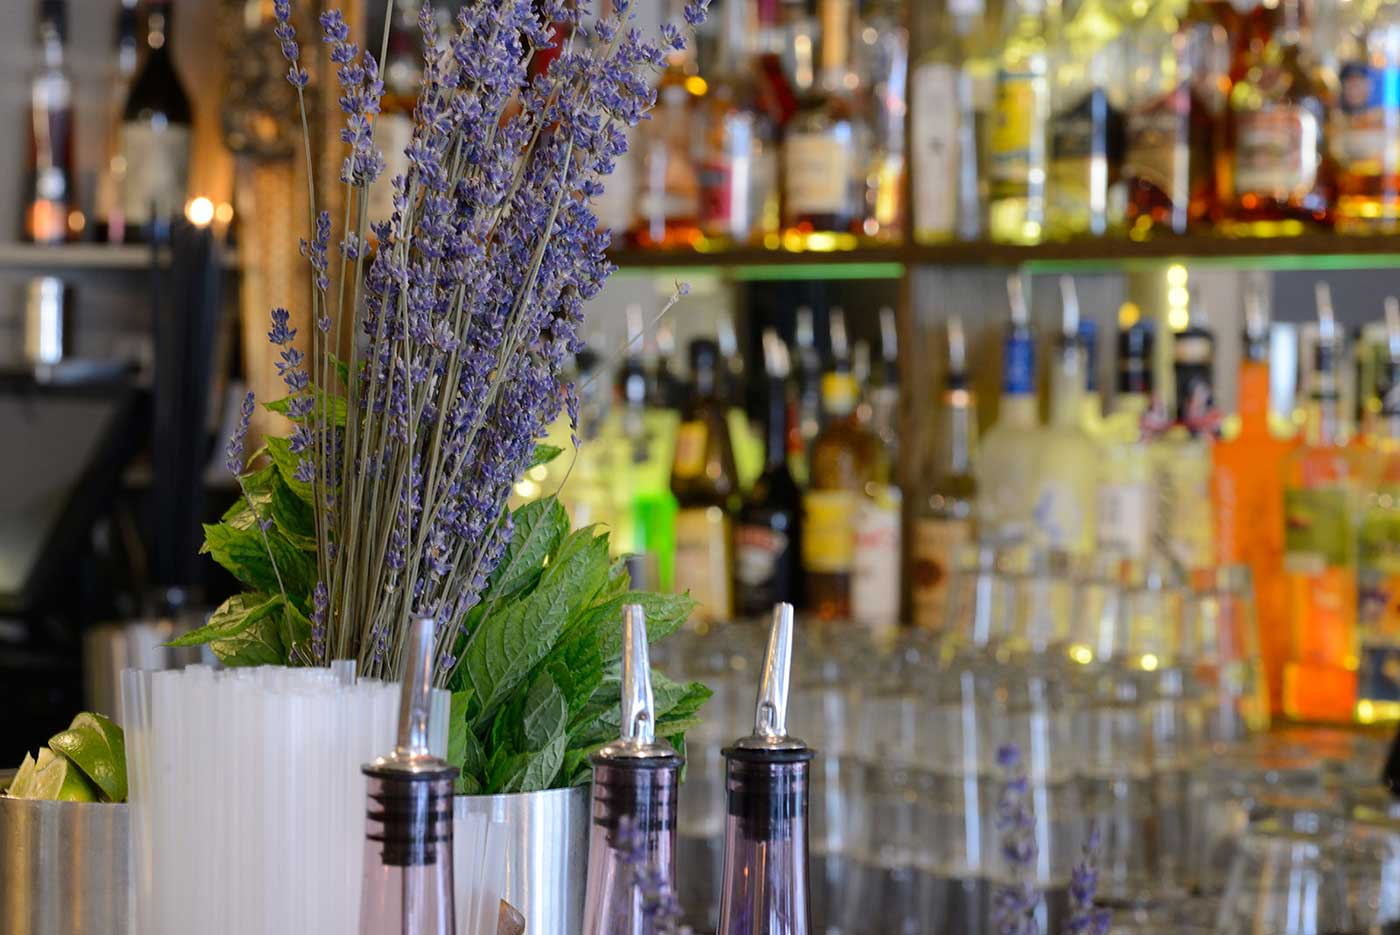 bar top featuring lavender, mint and limes. bottles in the background